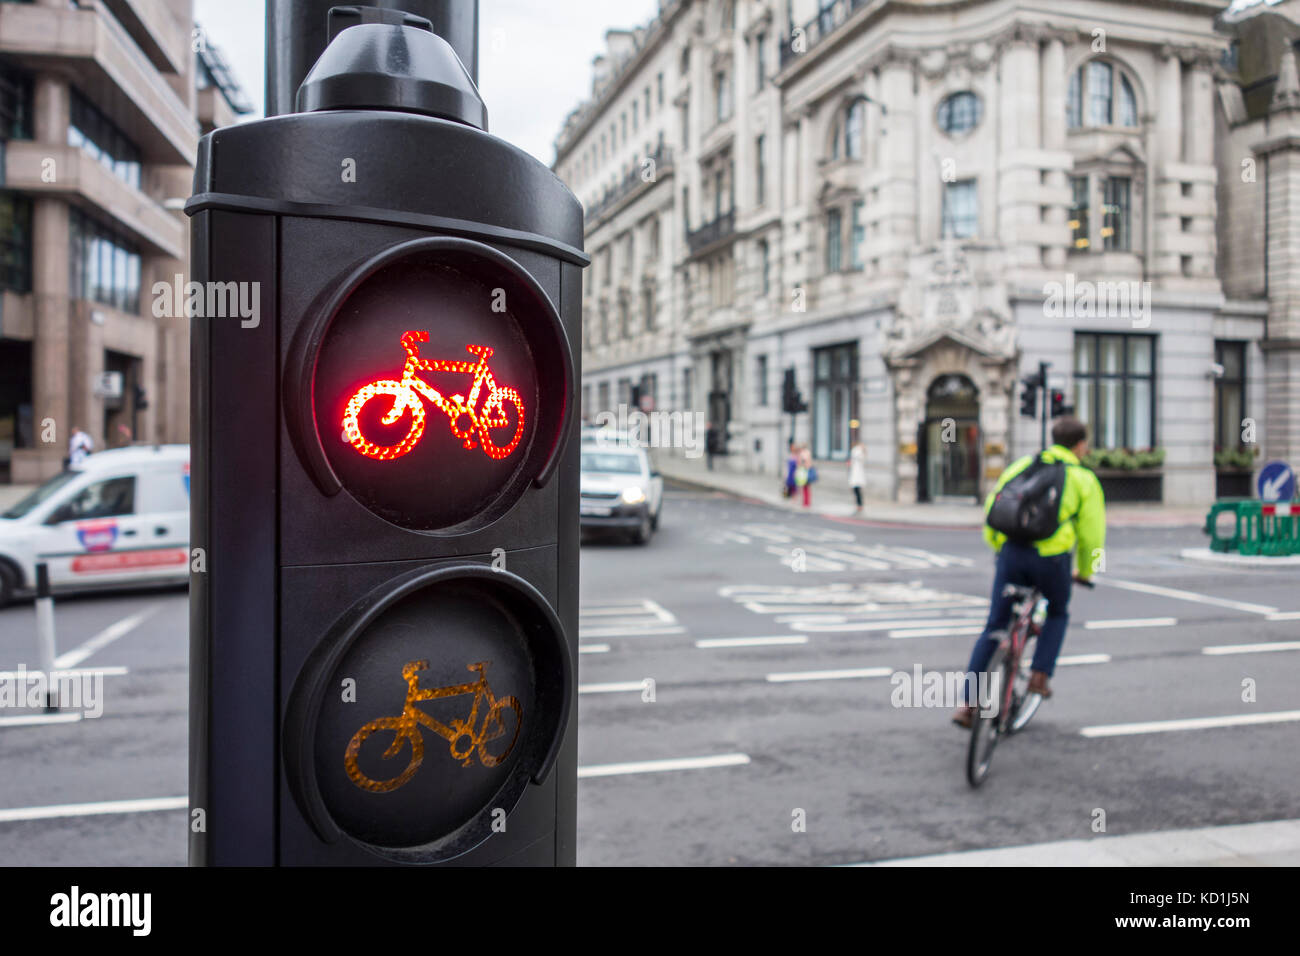 Cyclist cycles through a red light. City of London, UK - Stock Image